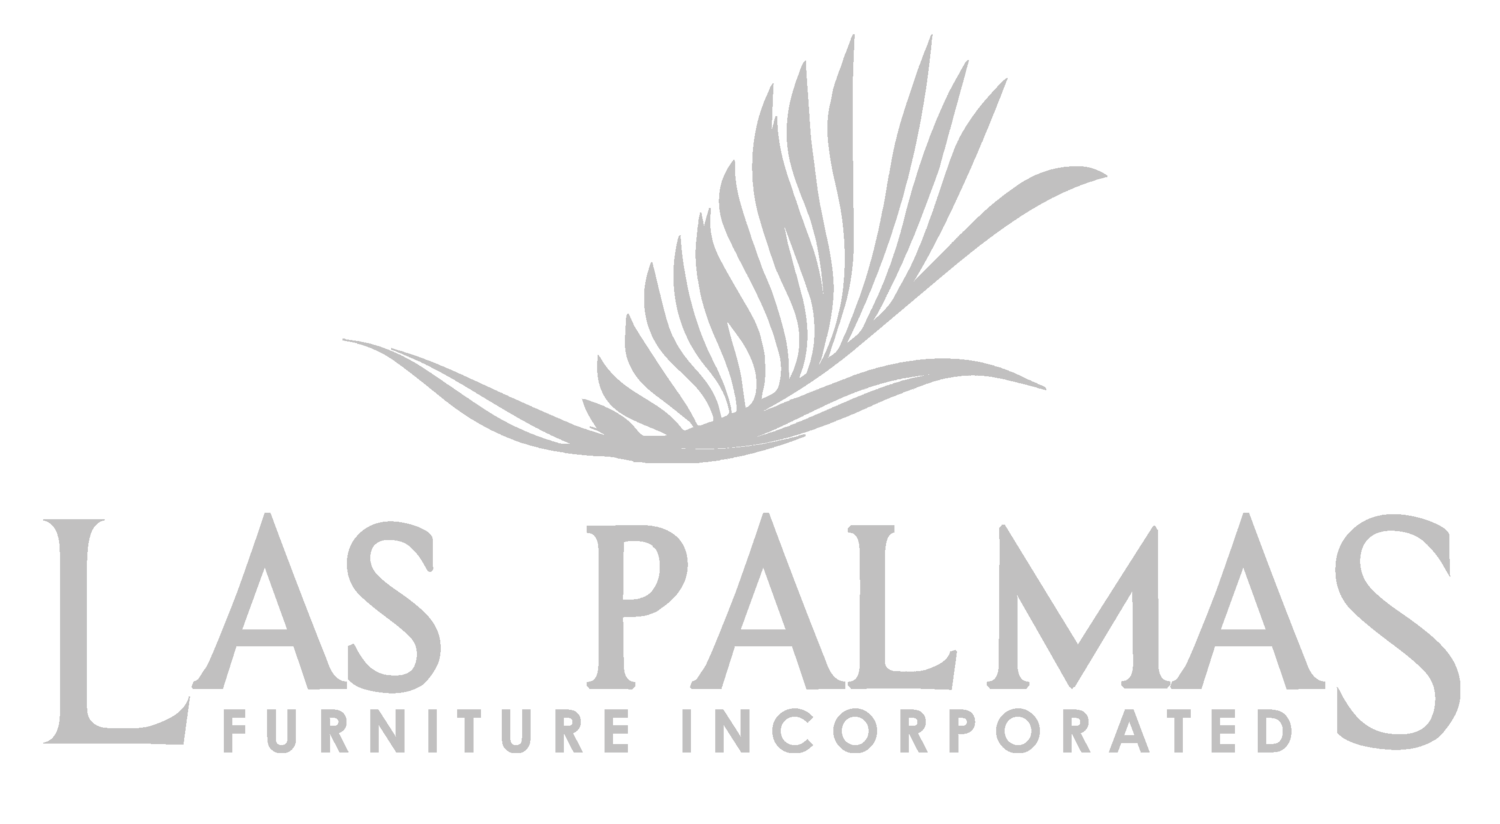 Las Palmas Furniture